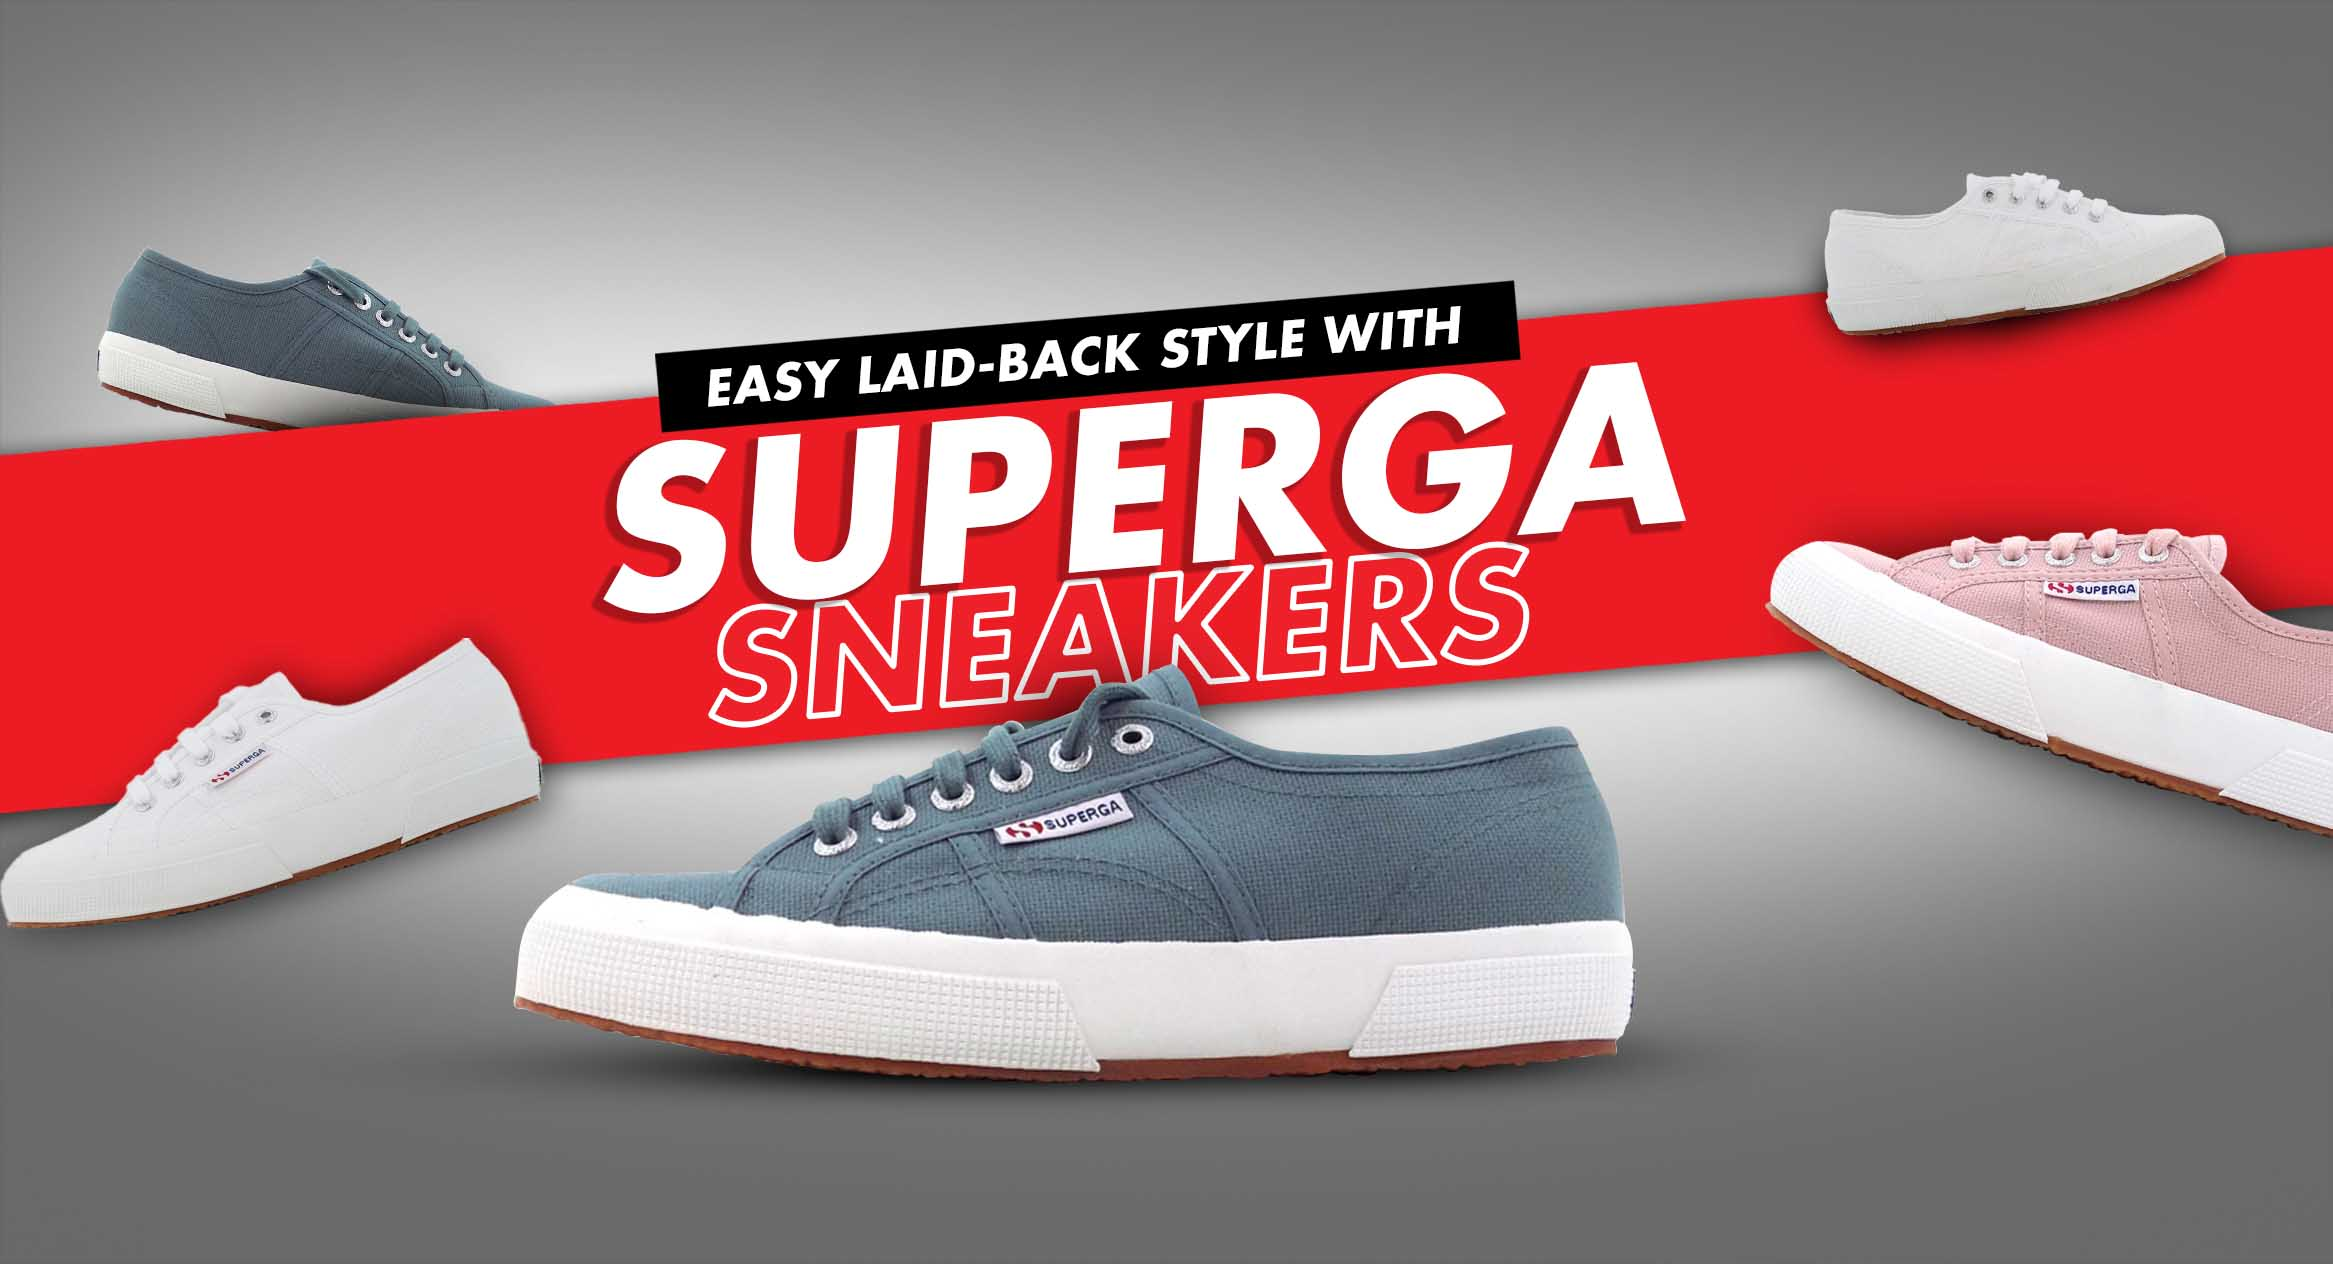 Easy Laid-Back Style with Superga Sneakers